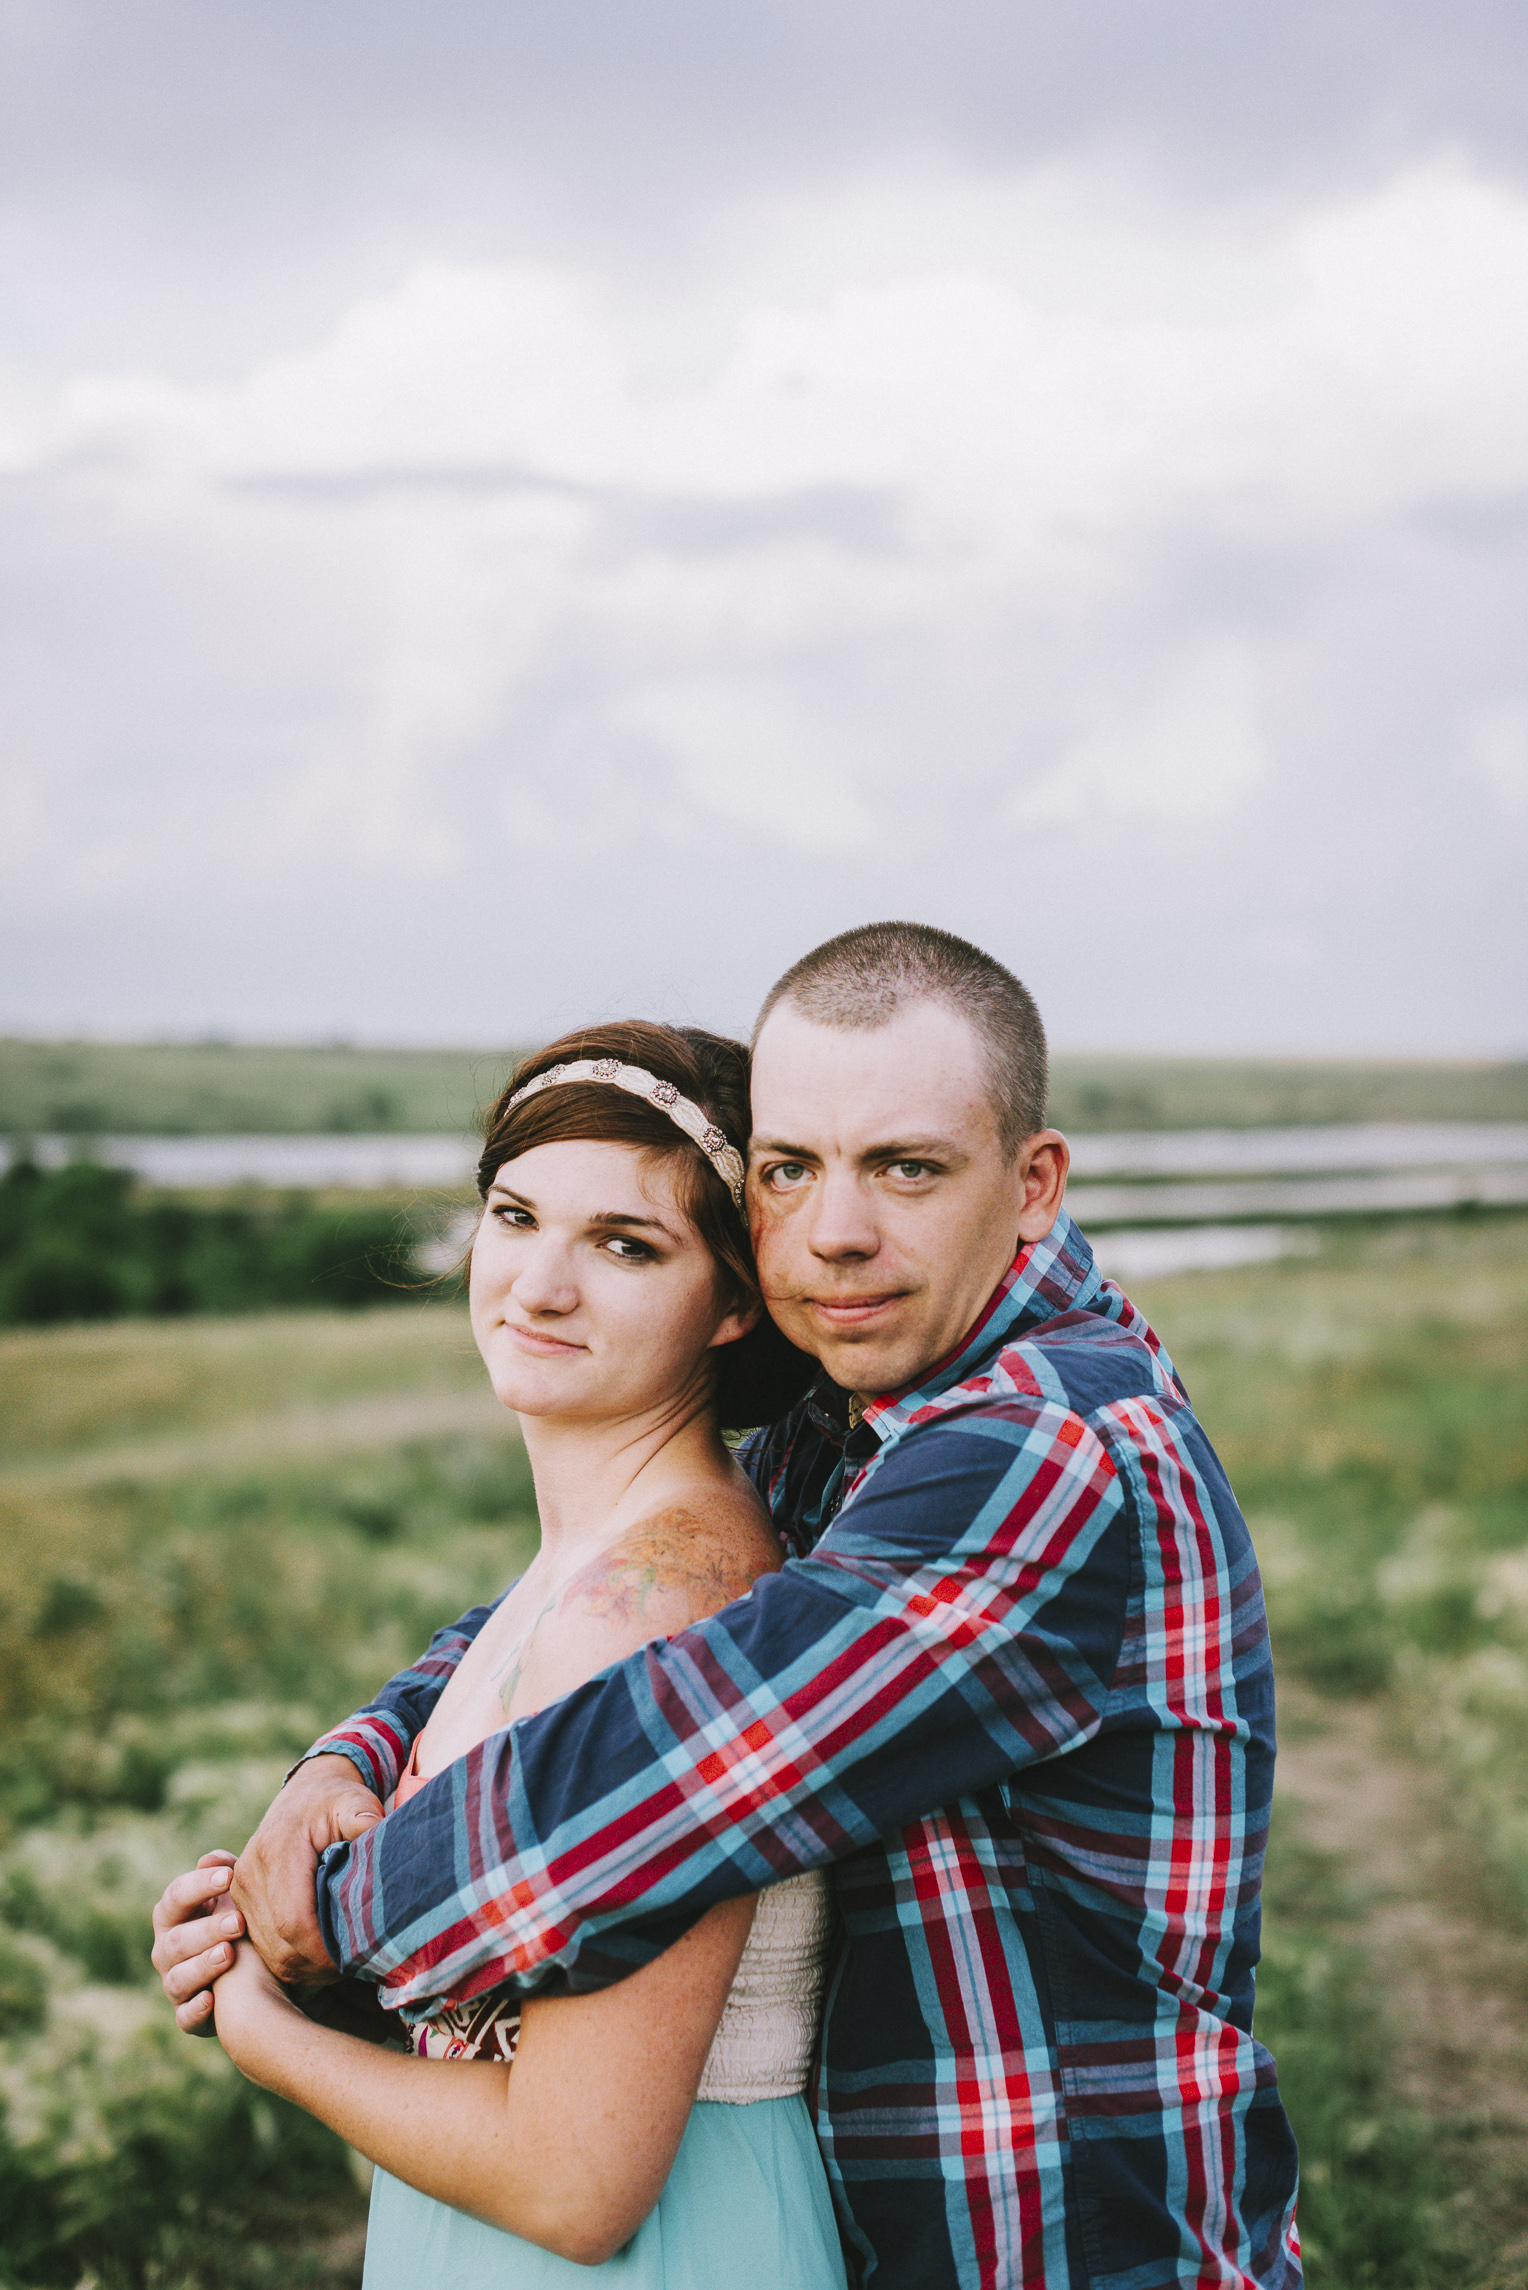 060416Hanson FamilyJULY15 JUSTINE & ERIC FAMILY PHOTOGRAPHER NORTH DAKOTA PHOTOGRAPHER DEBI RAE PHOTOGRAPHY-80.jpg